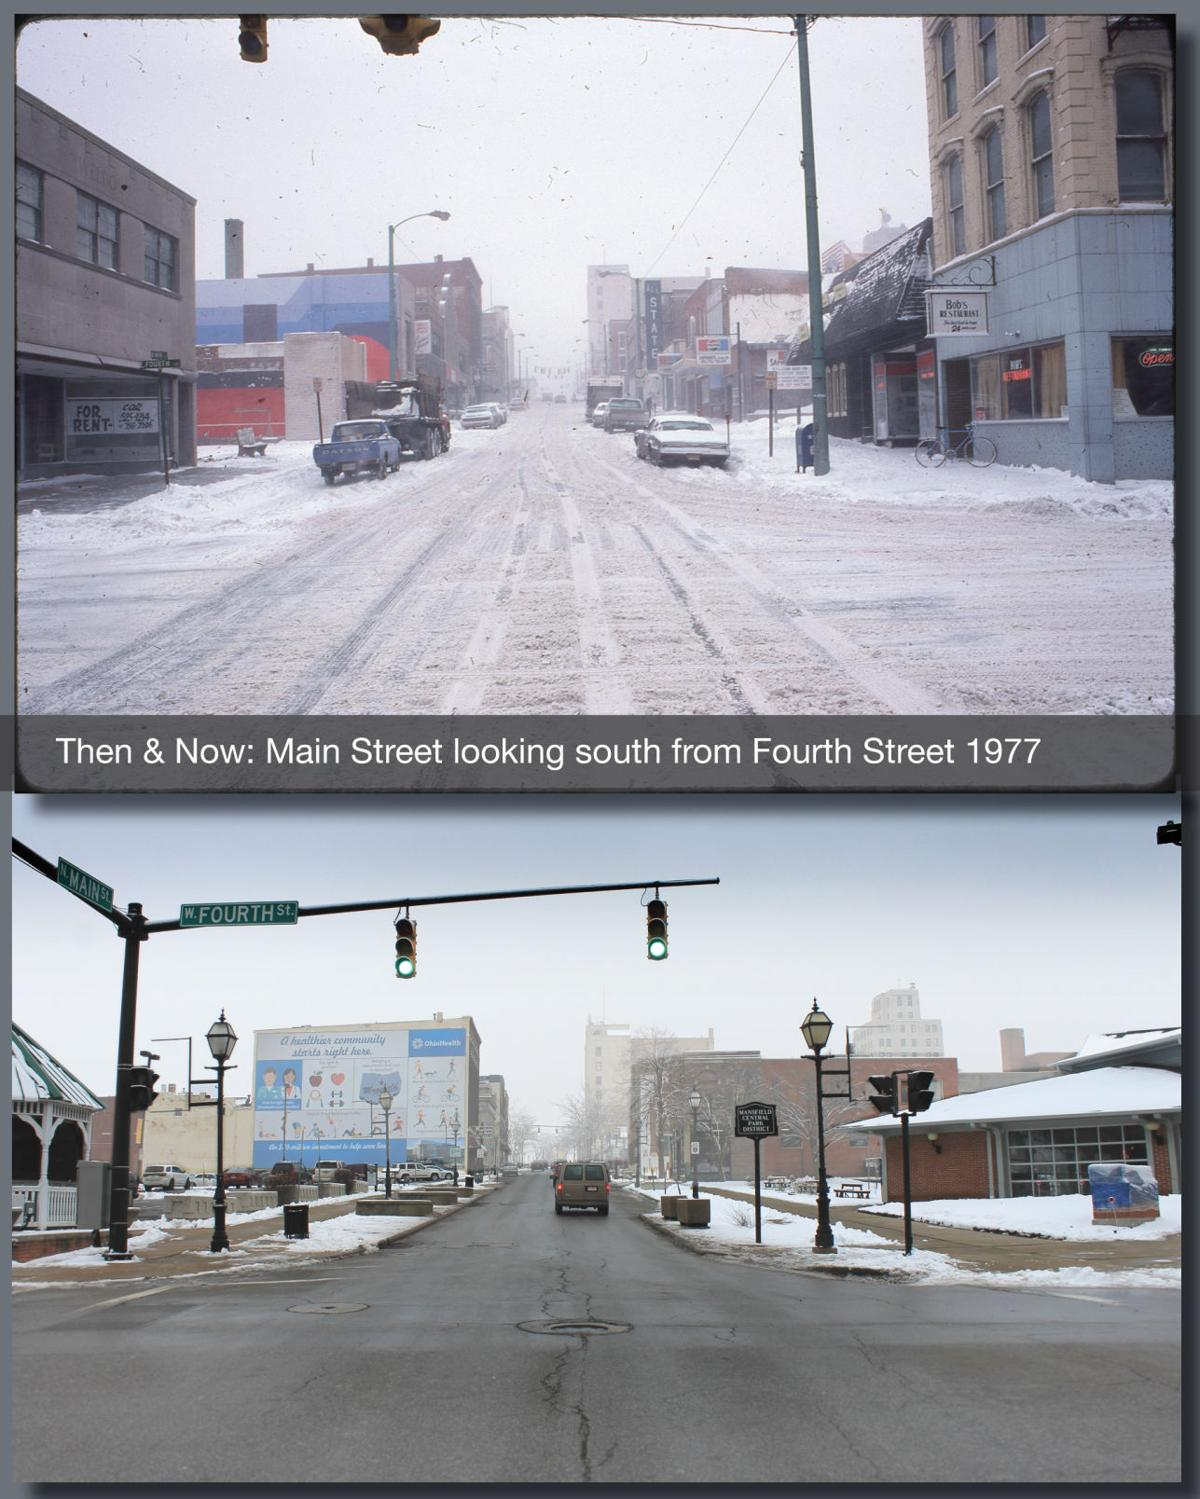 Then & Now: North Main at Fourth St. 1977